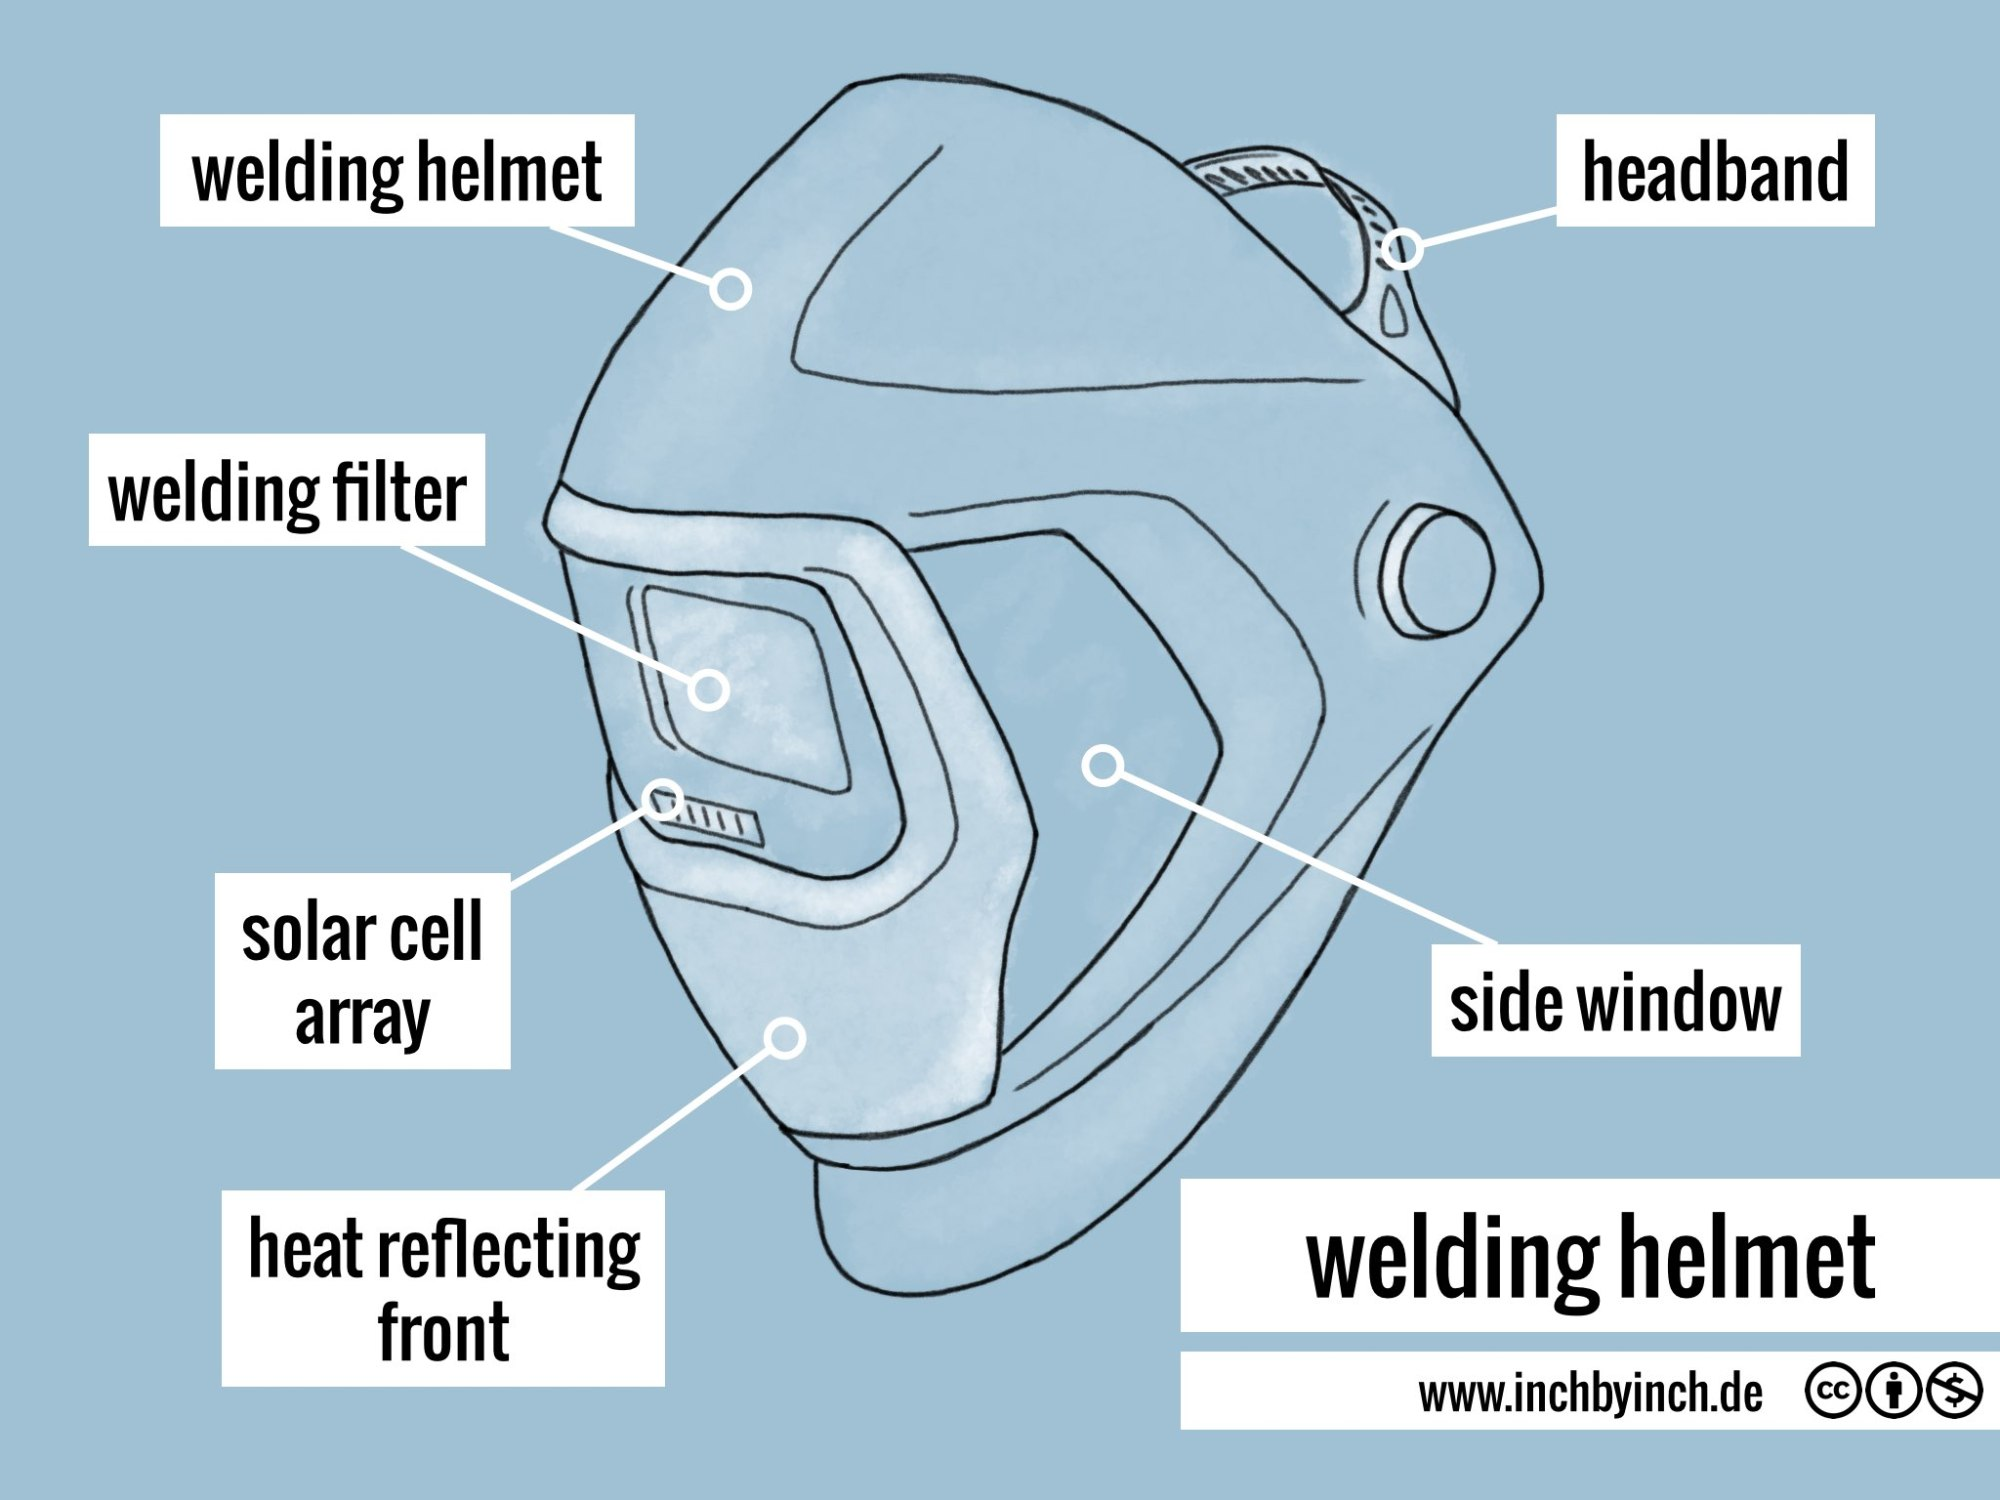 hight resolution of welding helmet diagram wiring diagram megawelding helmet diagram